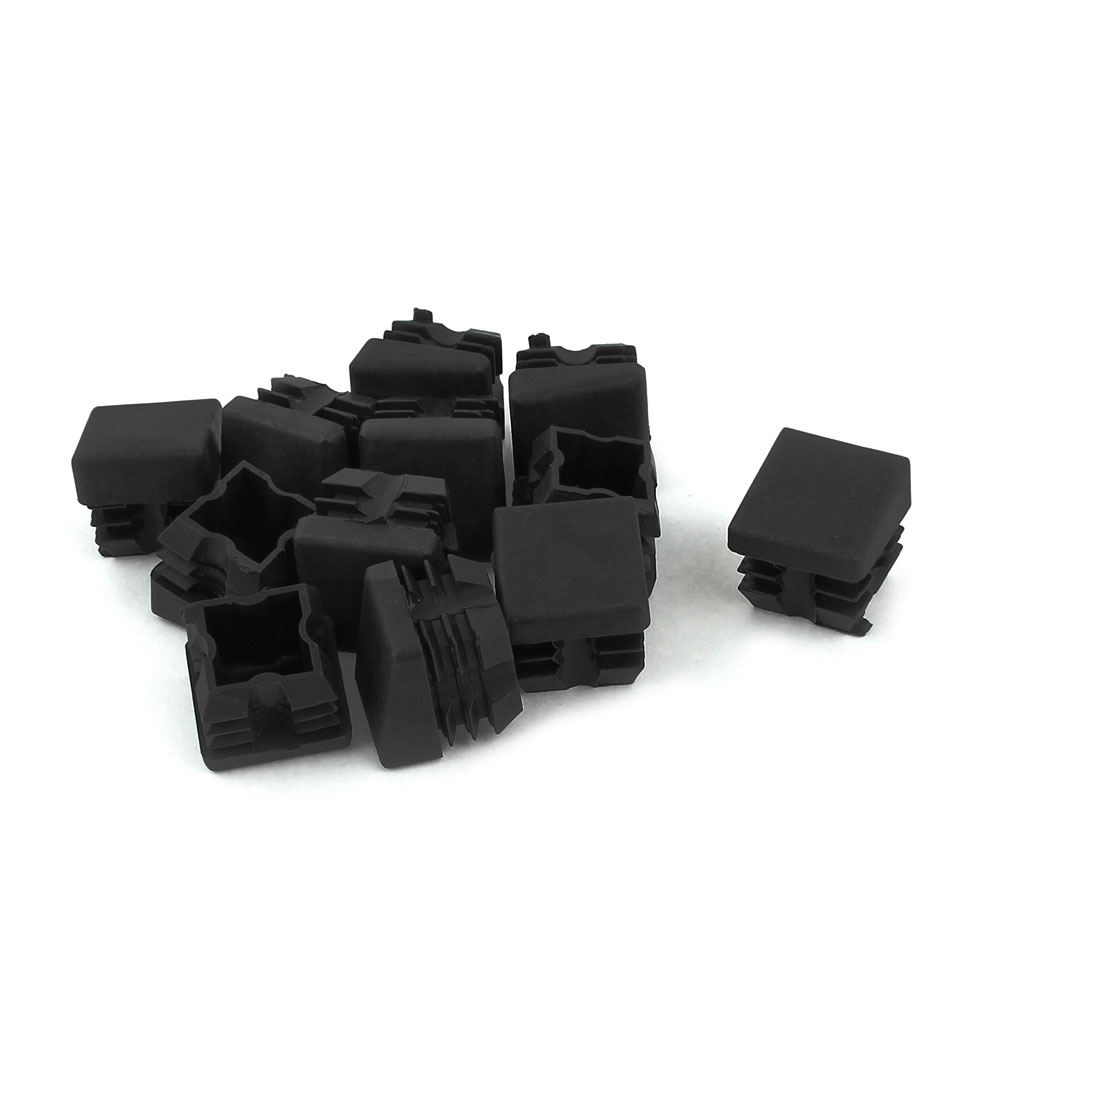 25mm x 25mm Plastic Square Caps Tube Pipe Inserts End Blanking Black 12 Pcs